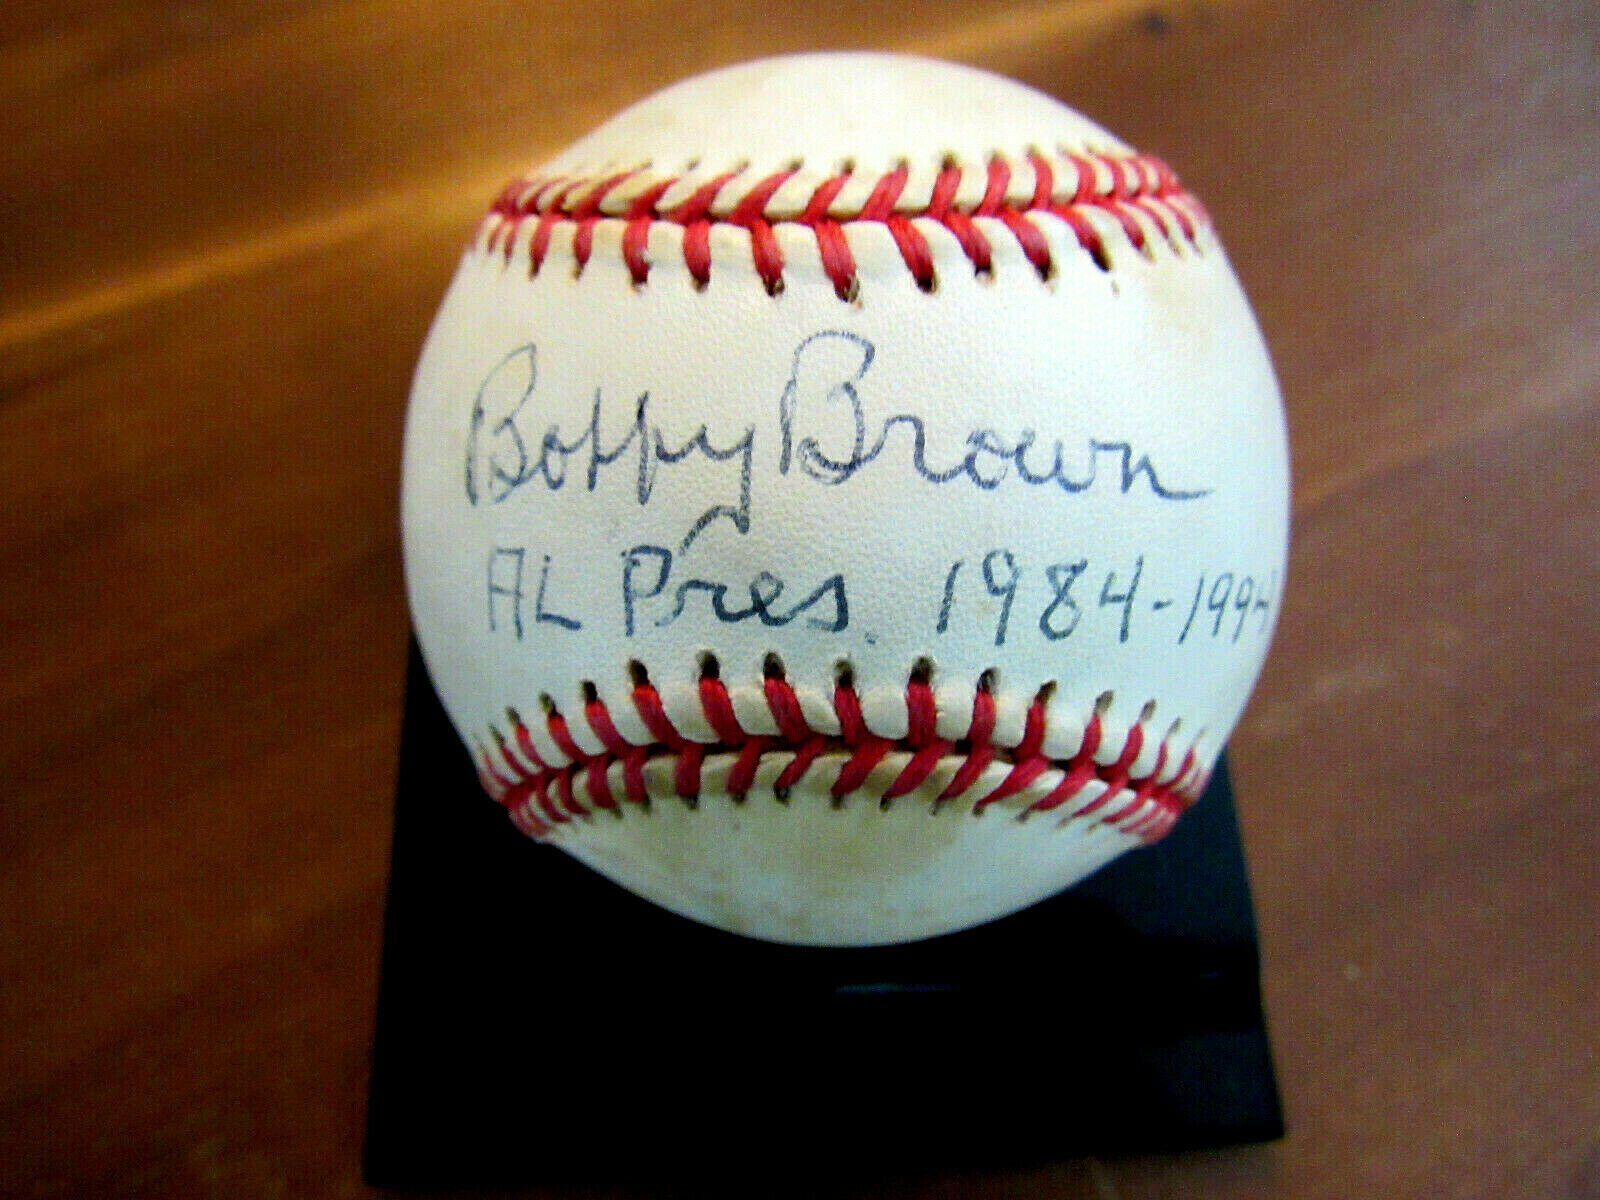 Primary image for BOBBY BROWN AL PRES 1984-1994 YANKEES SIGNED AUTO BROWN GAME USED BASEBALL JSA